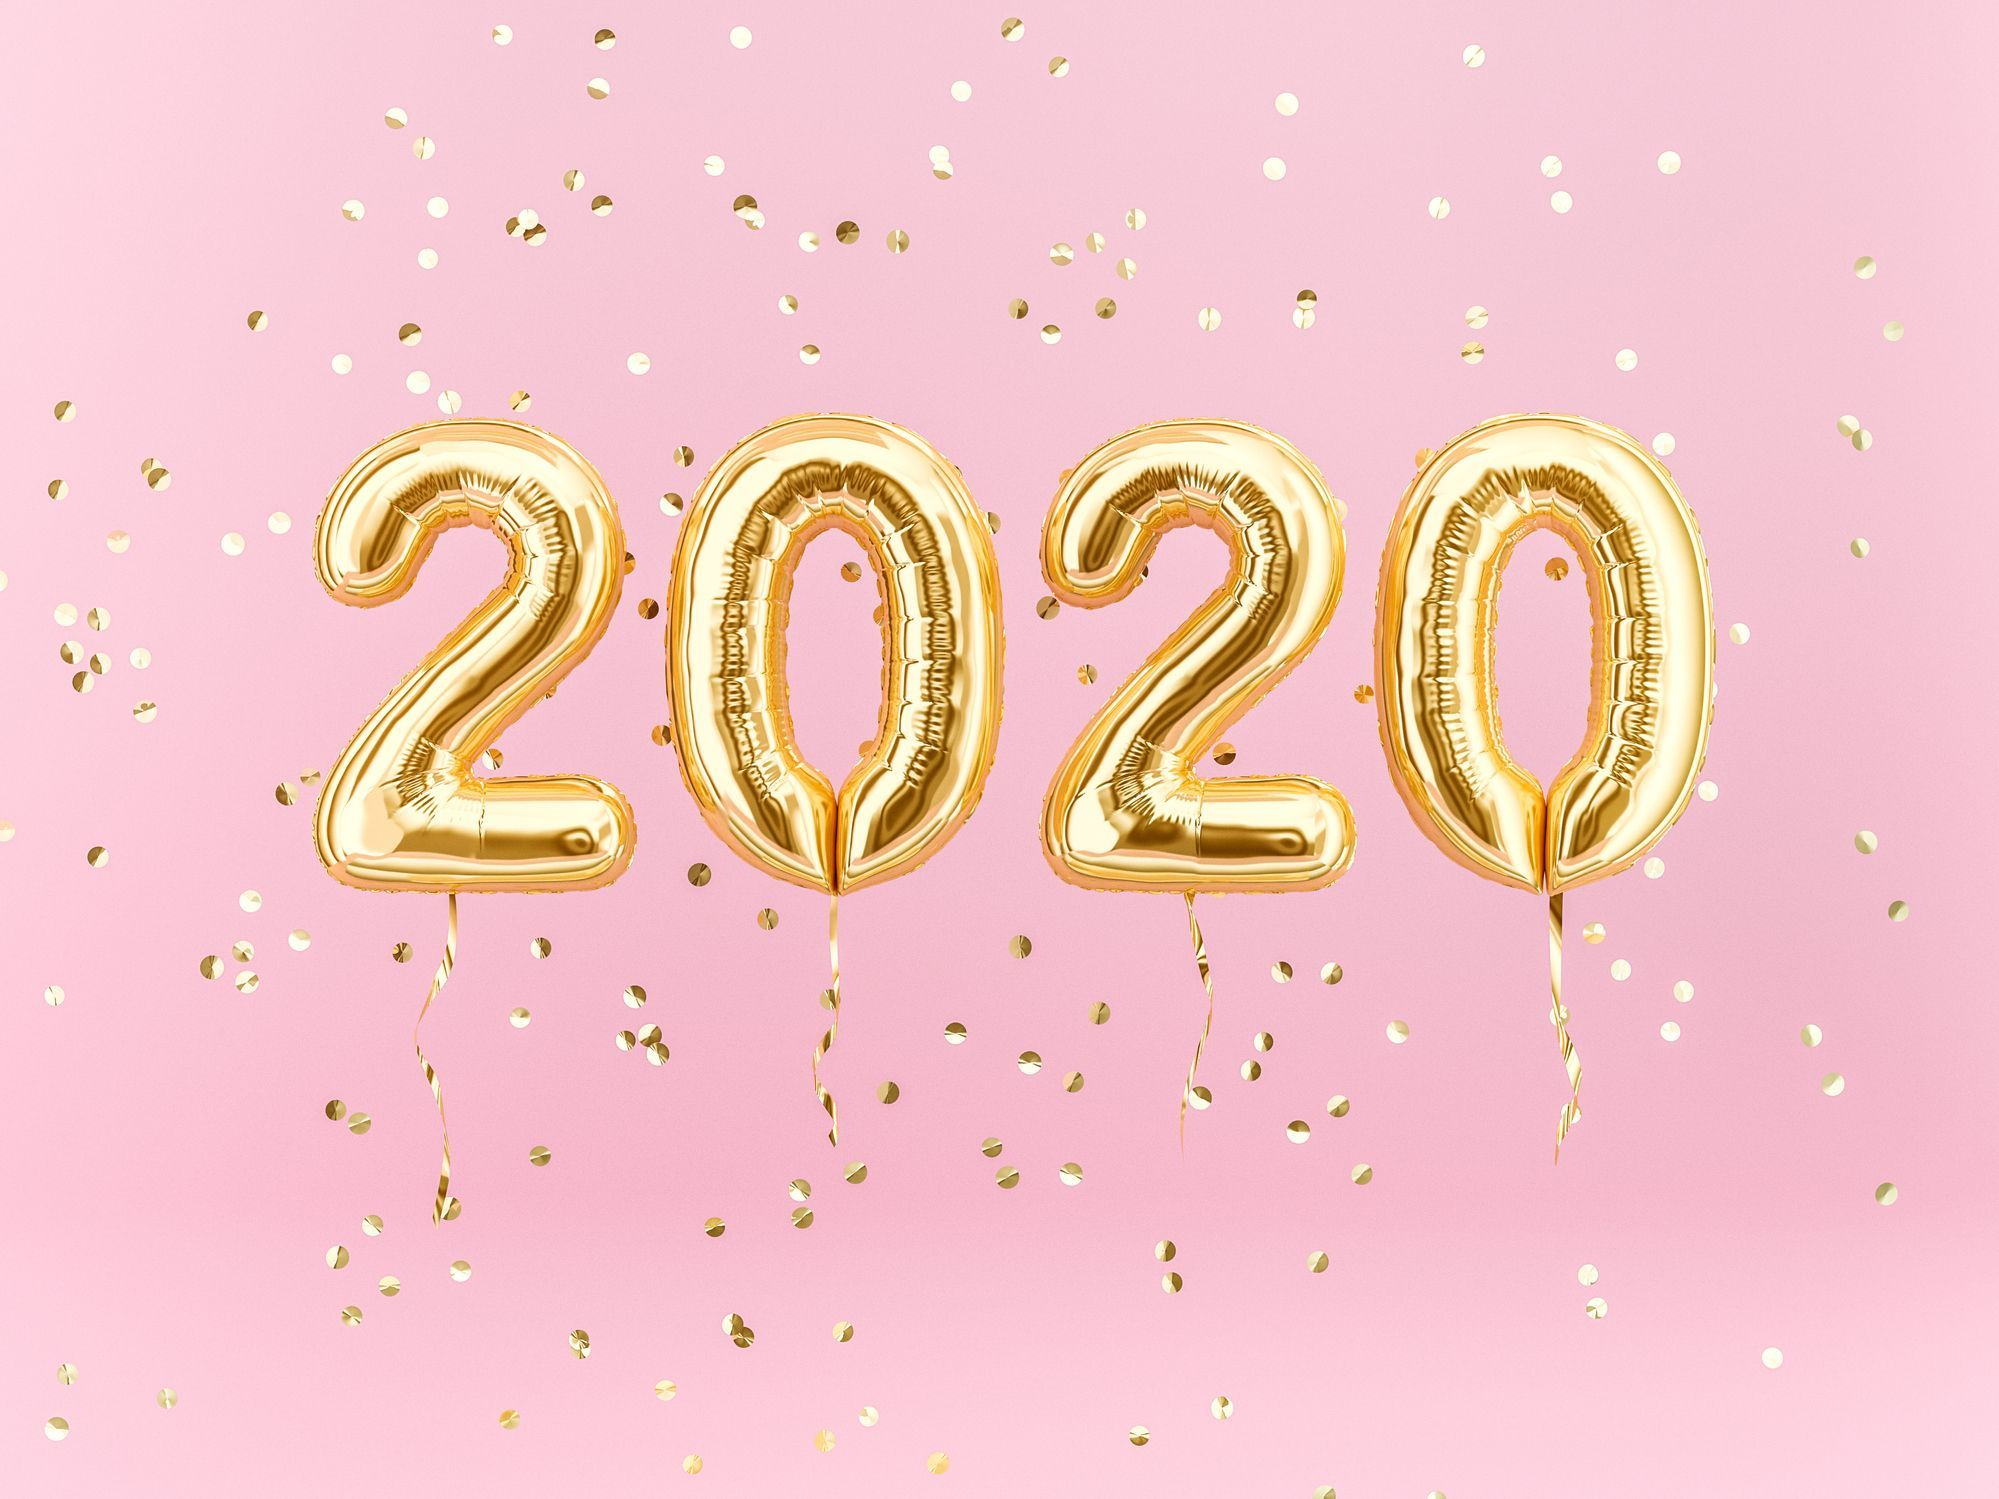 How To Stack Sats On Your 2020 Resolutions